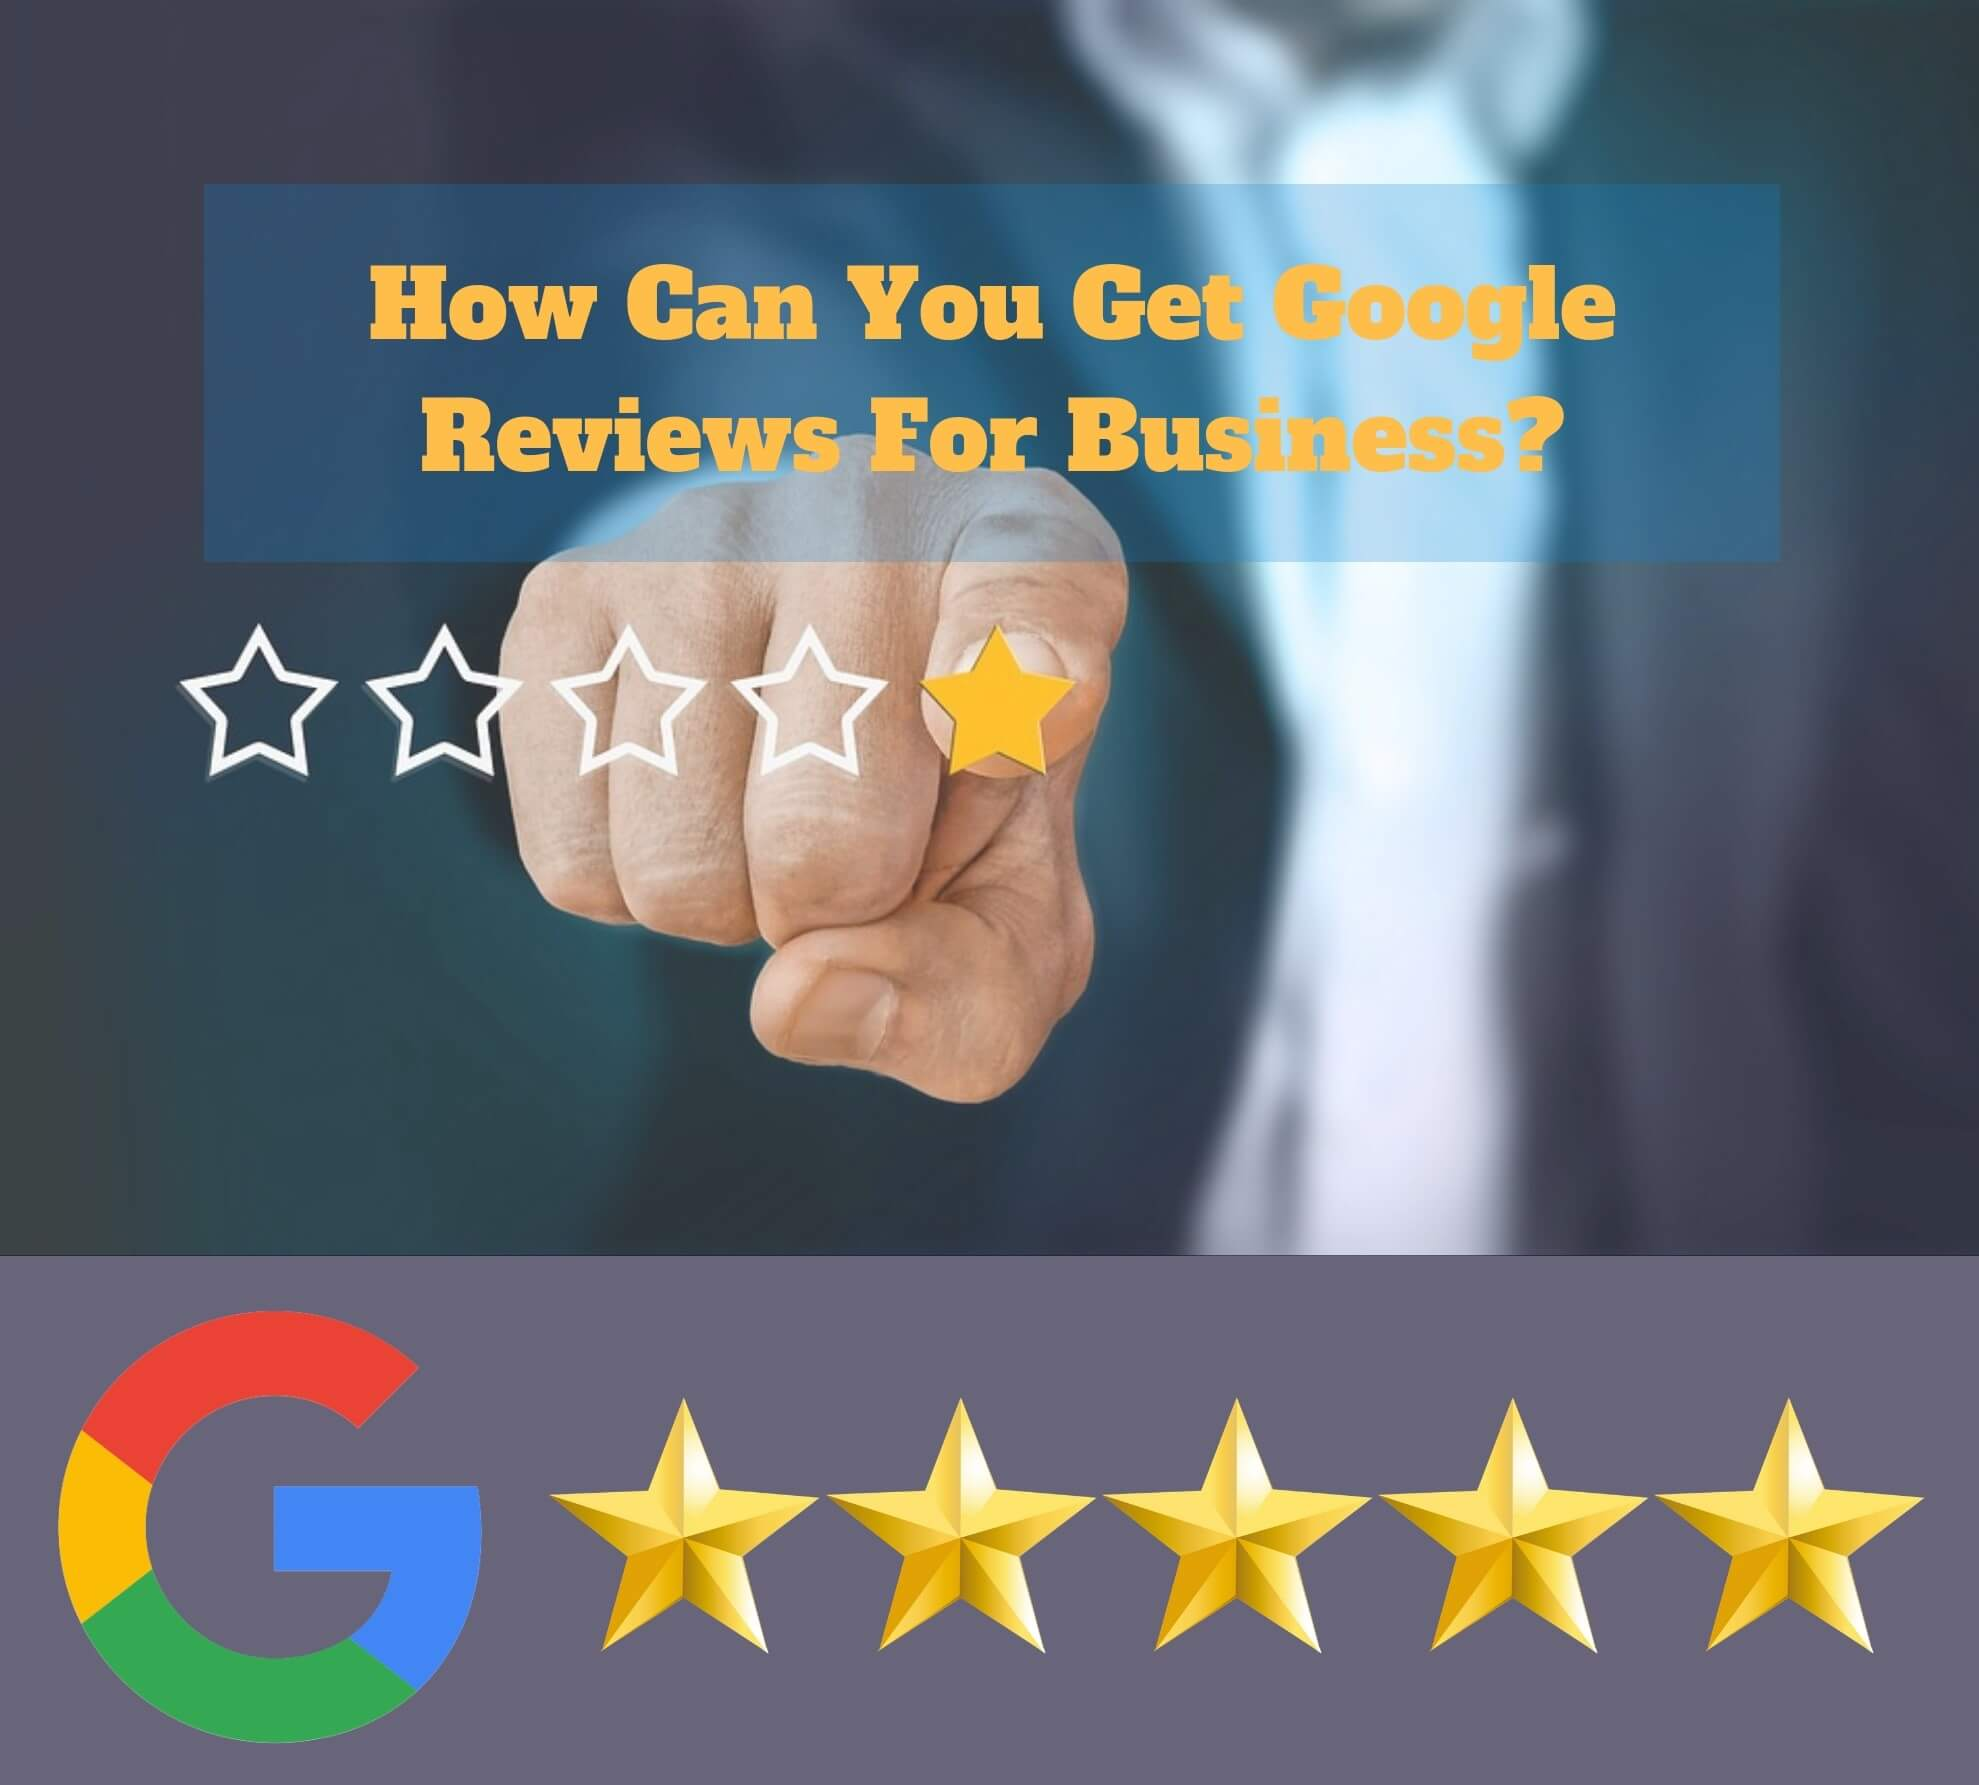 How can I get Google reviews for my business